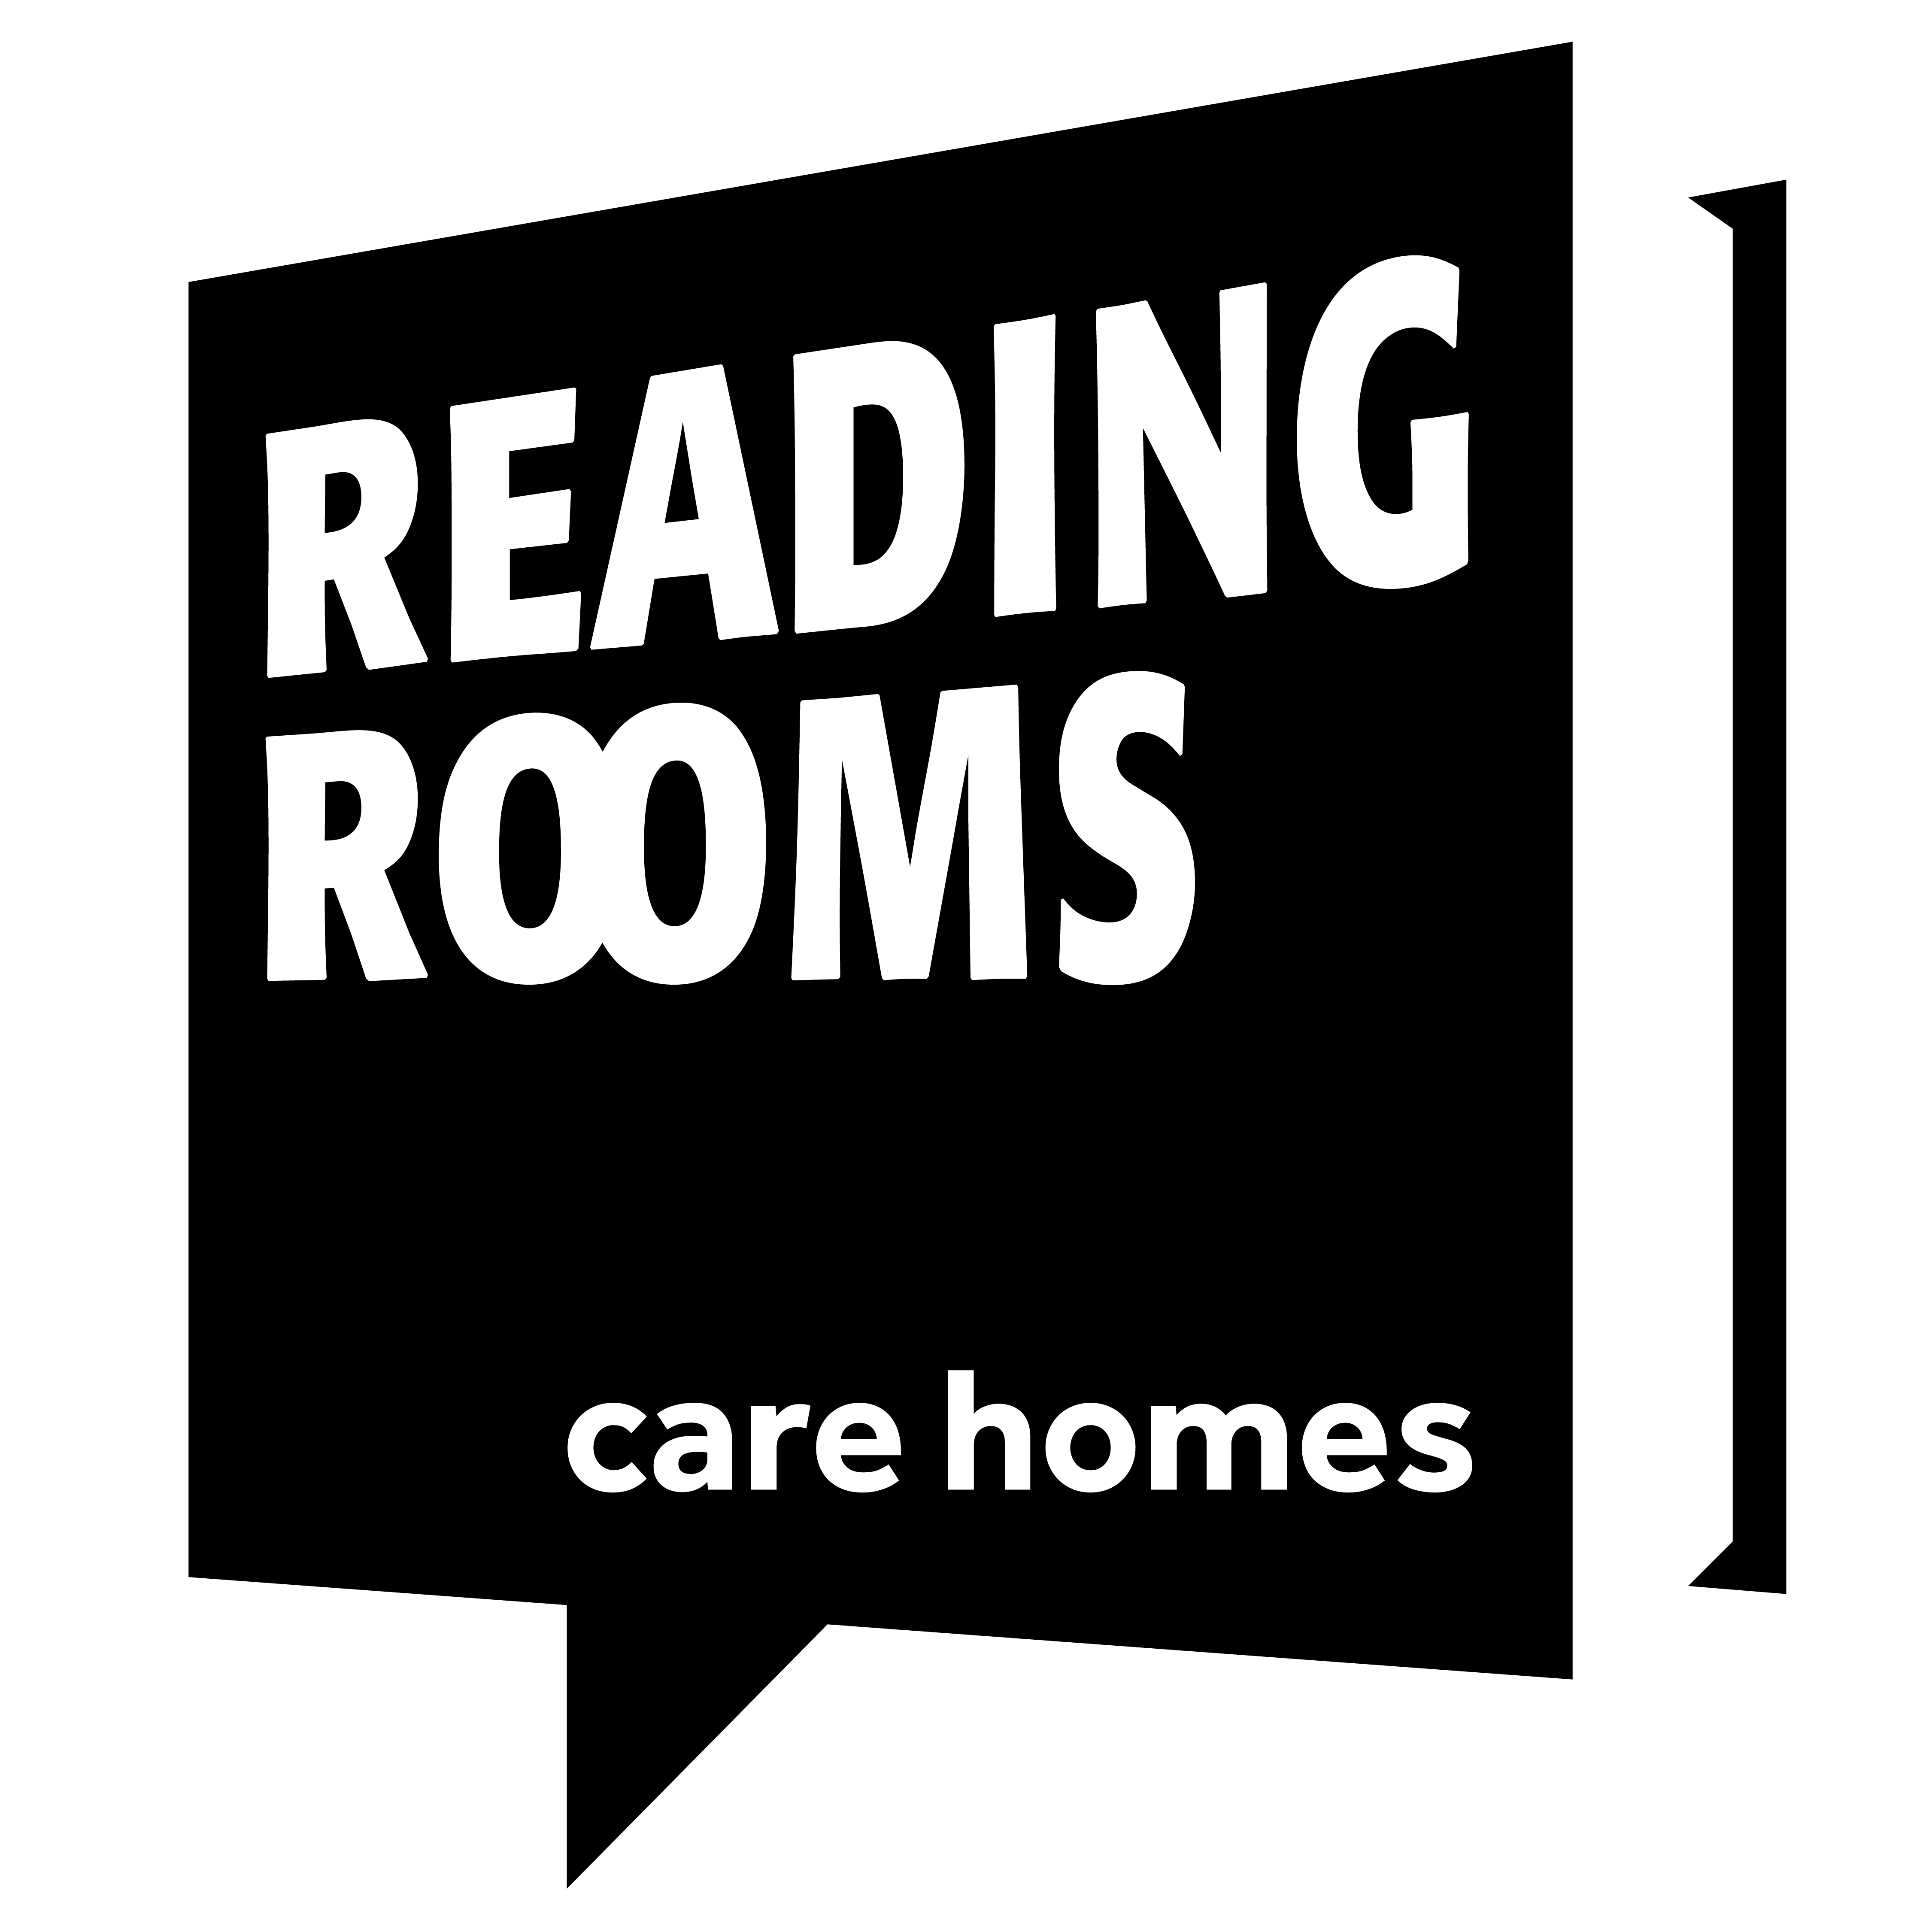 Reading Rooms care homes logo